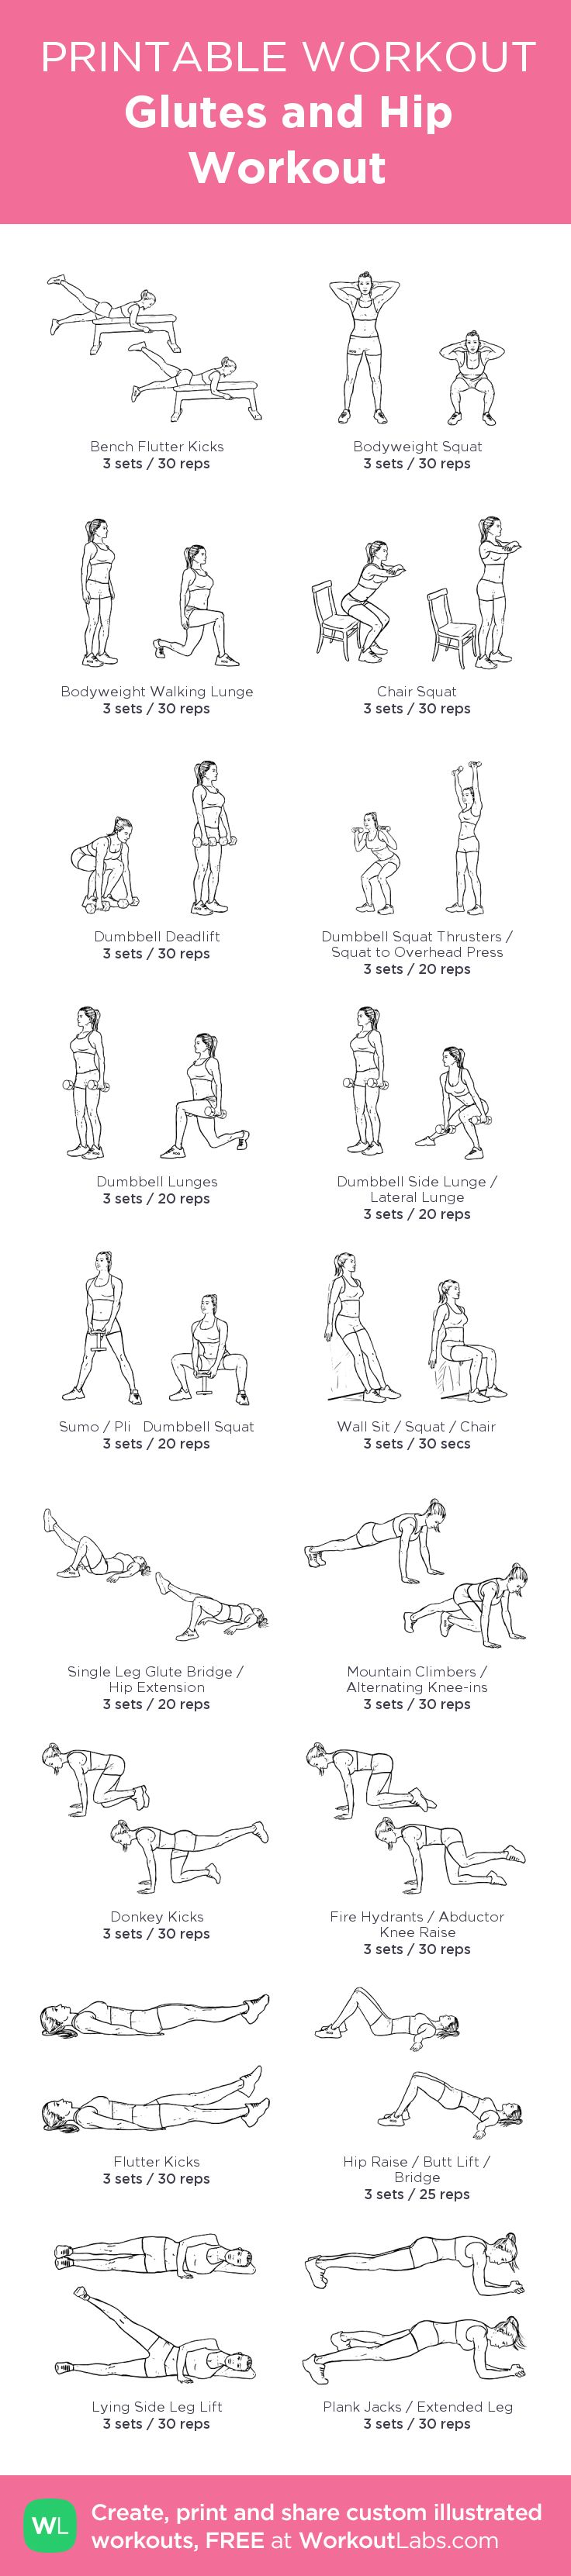 Glutes and Hip Workout: my visual workout created at WorkoutLabs.com • Click through to customize and download as a FREE PDF! #customworkout